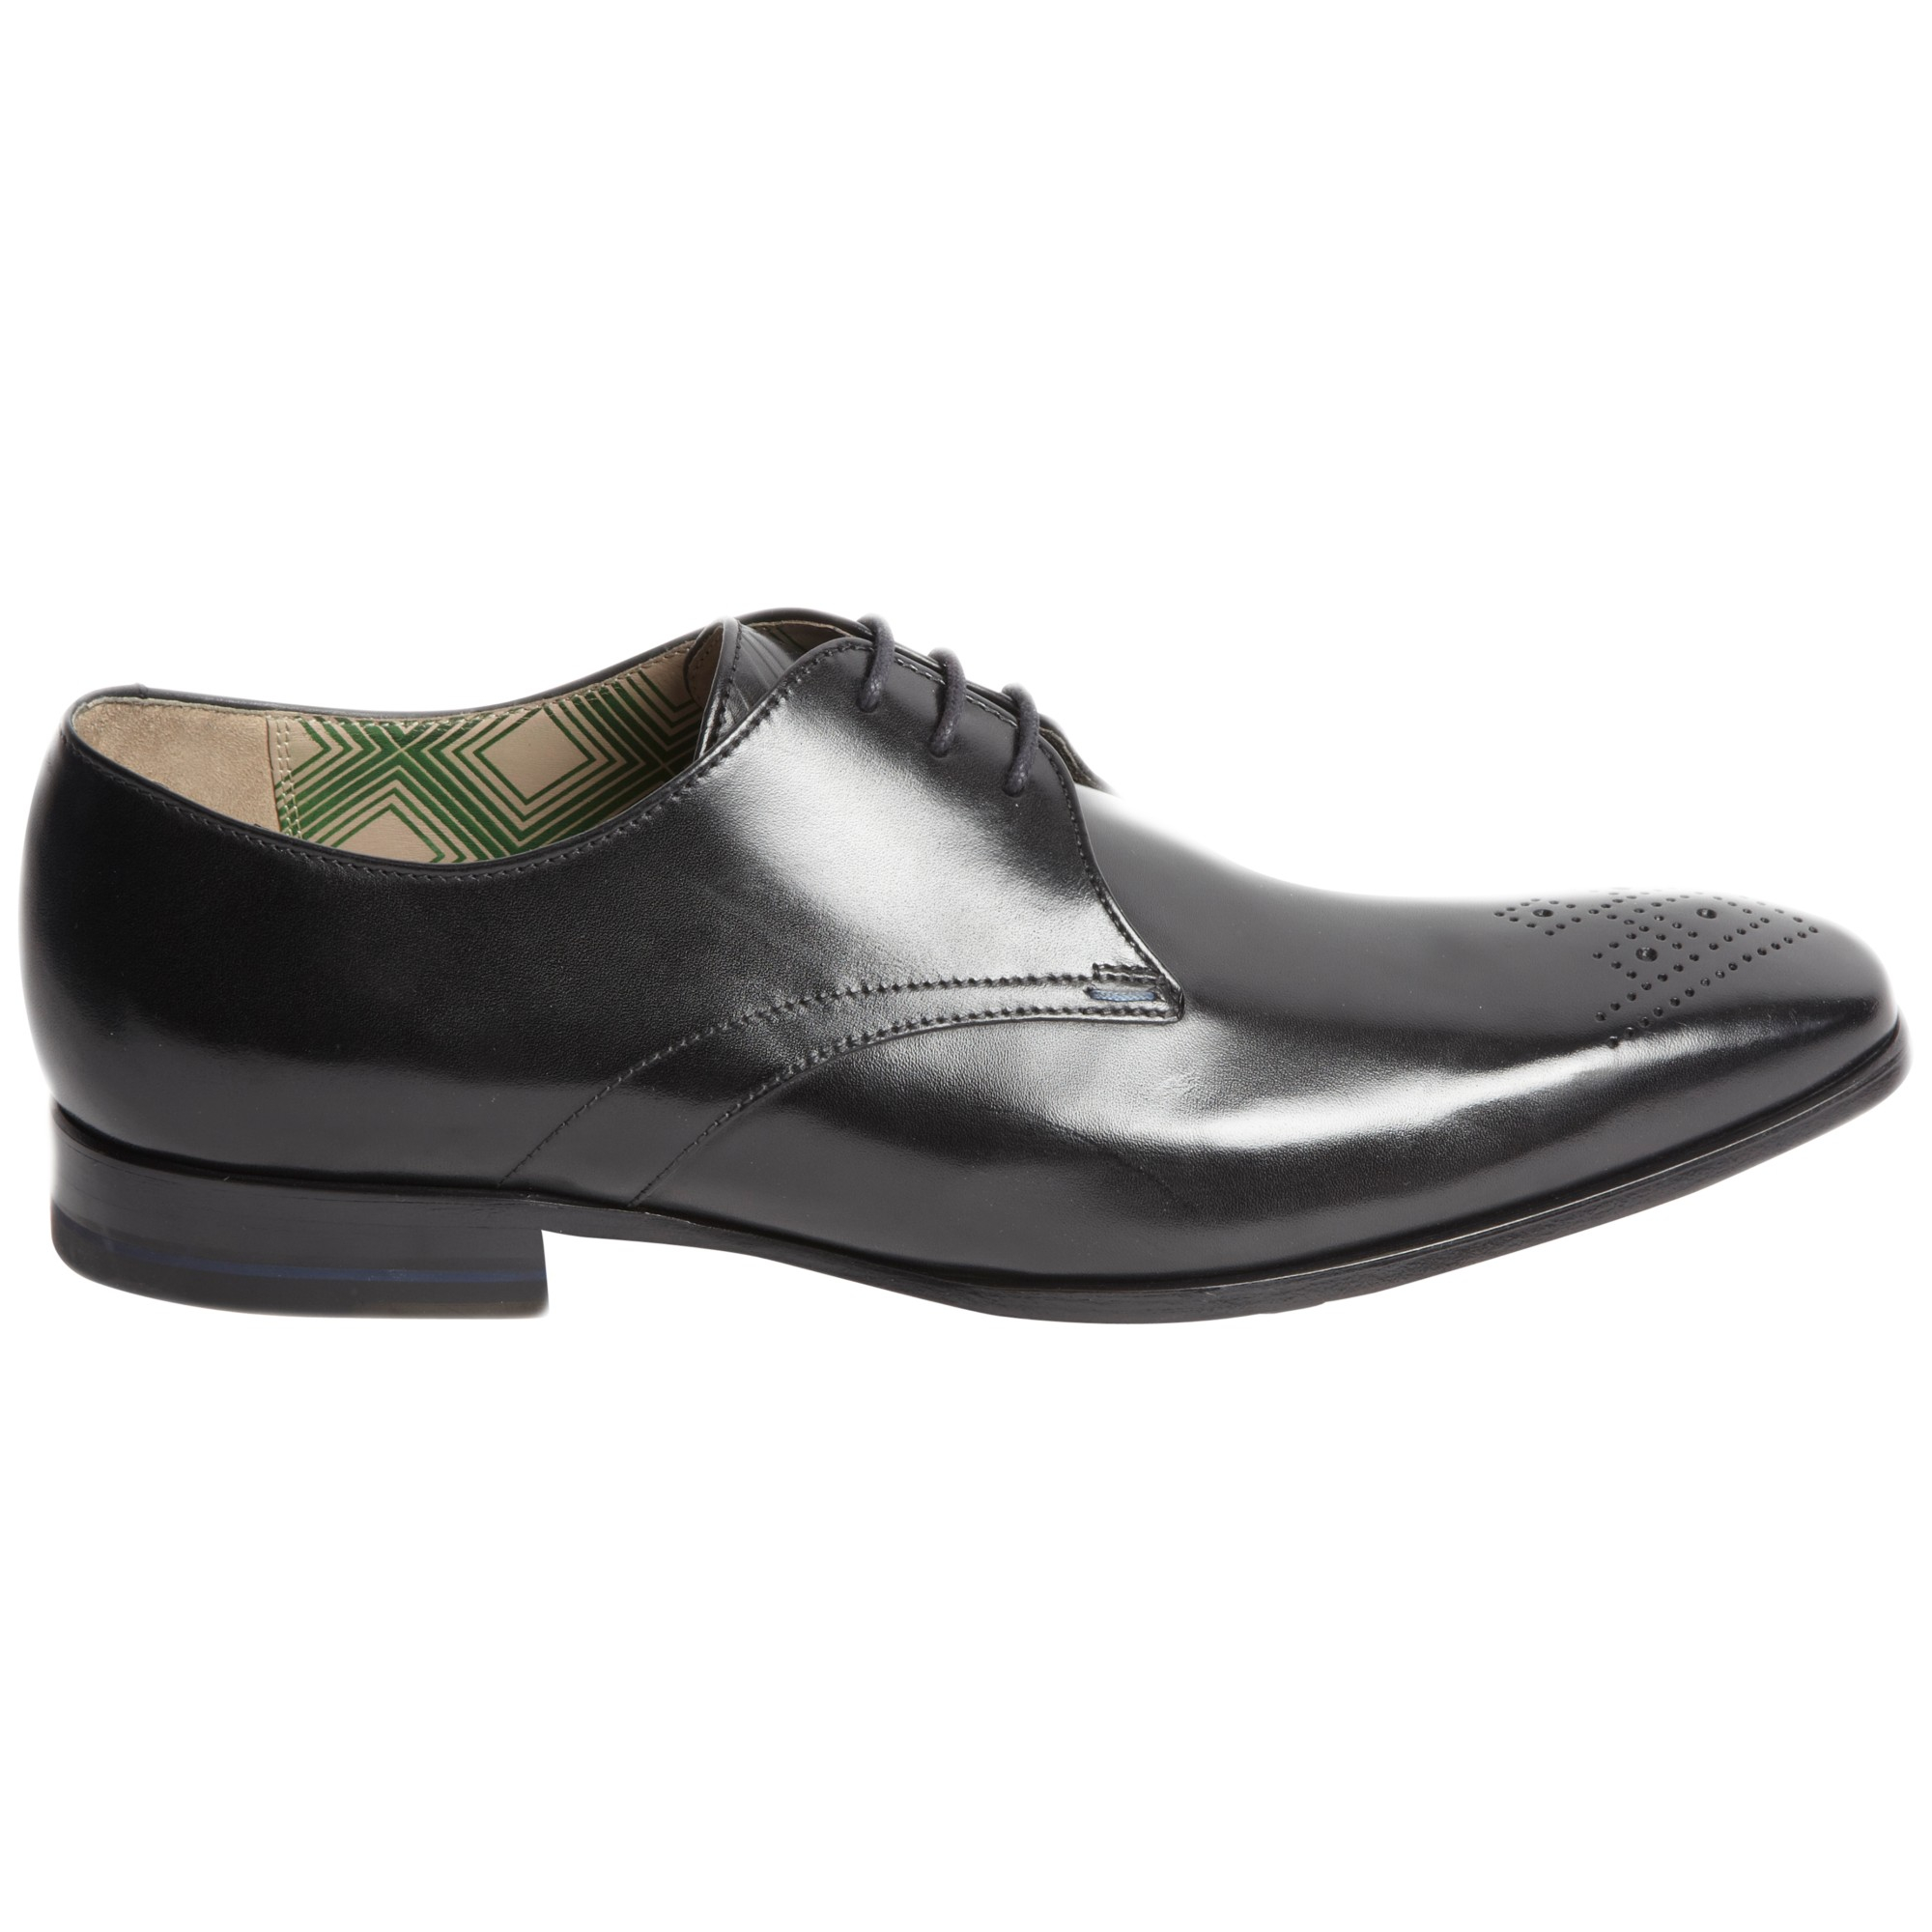 Oliver Sweeney Patent Leather Shoes